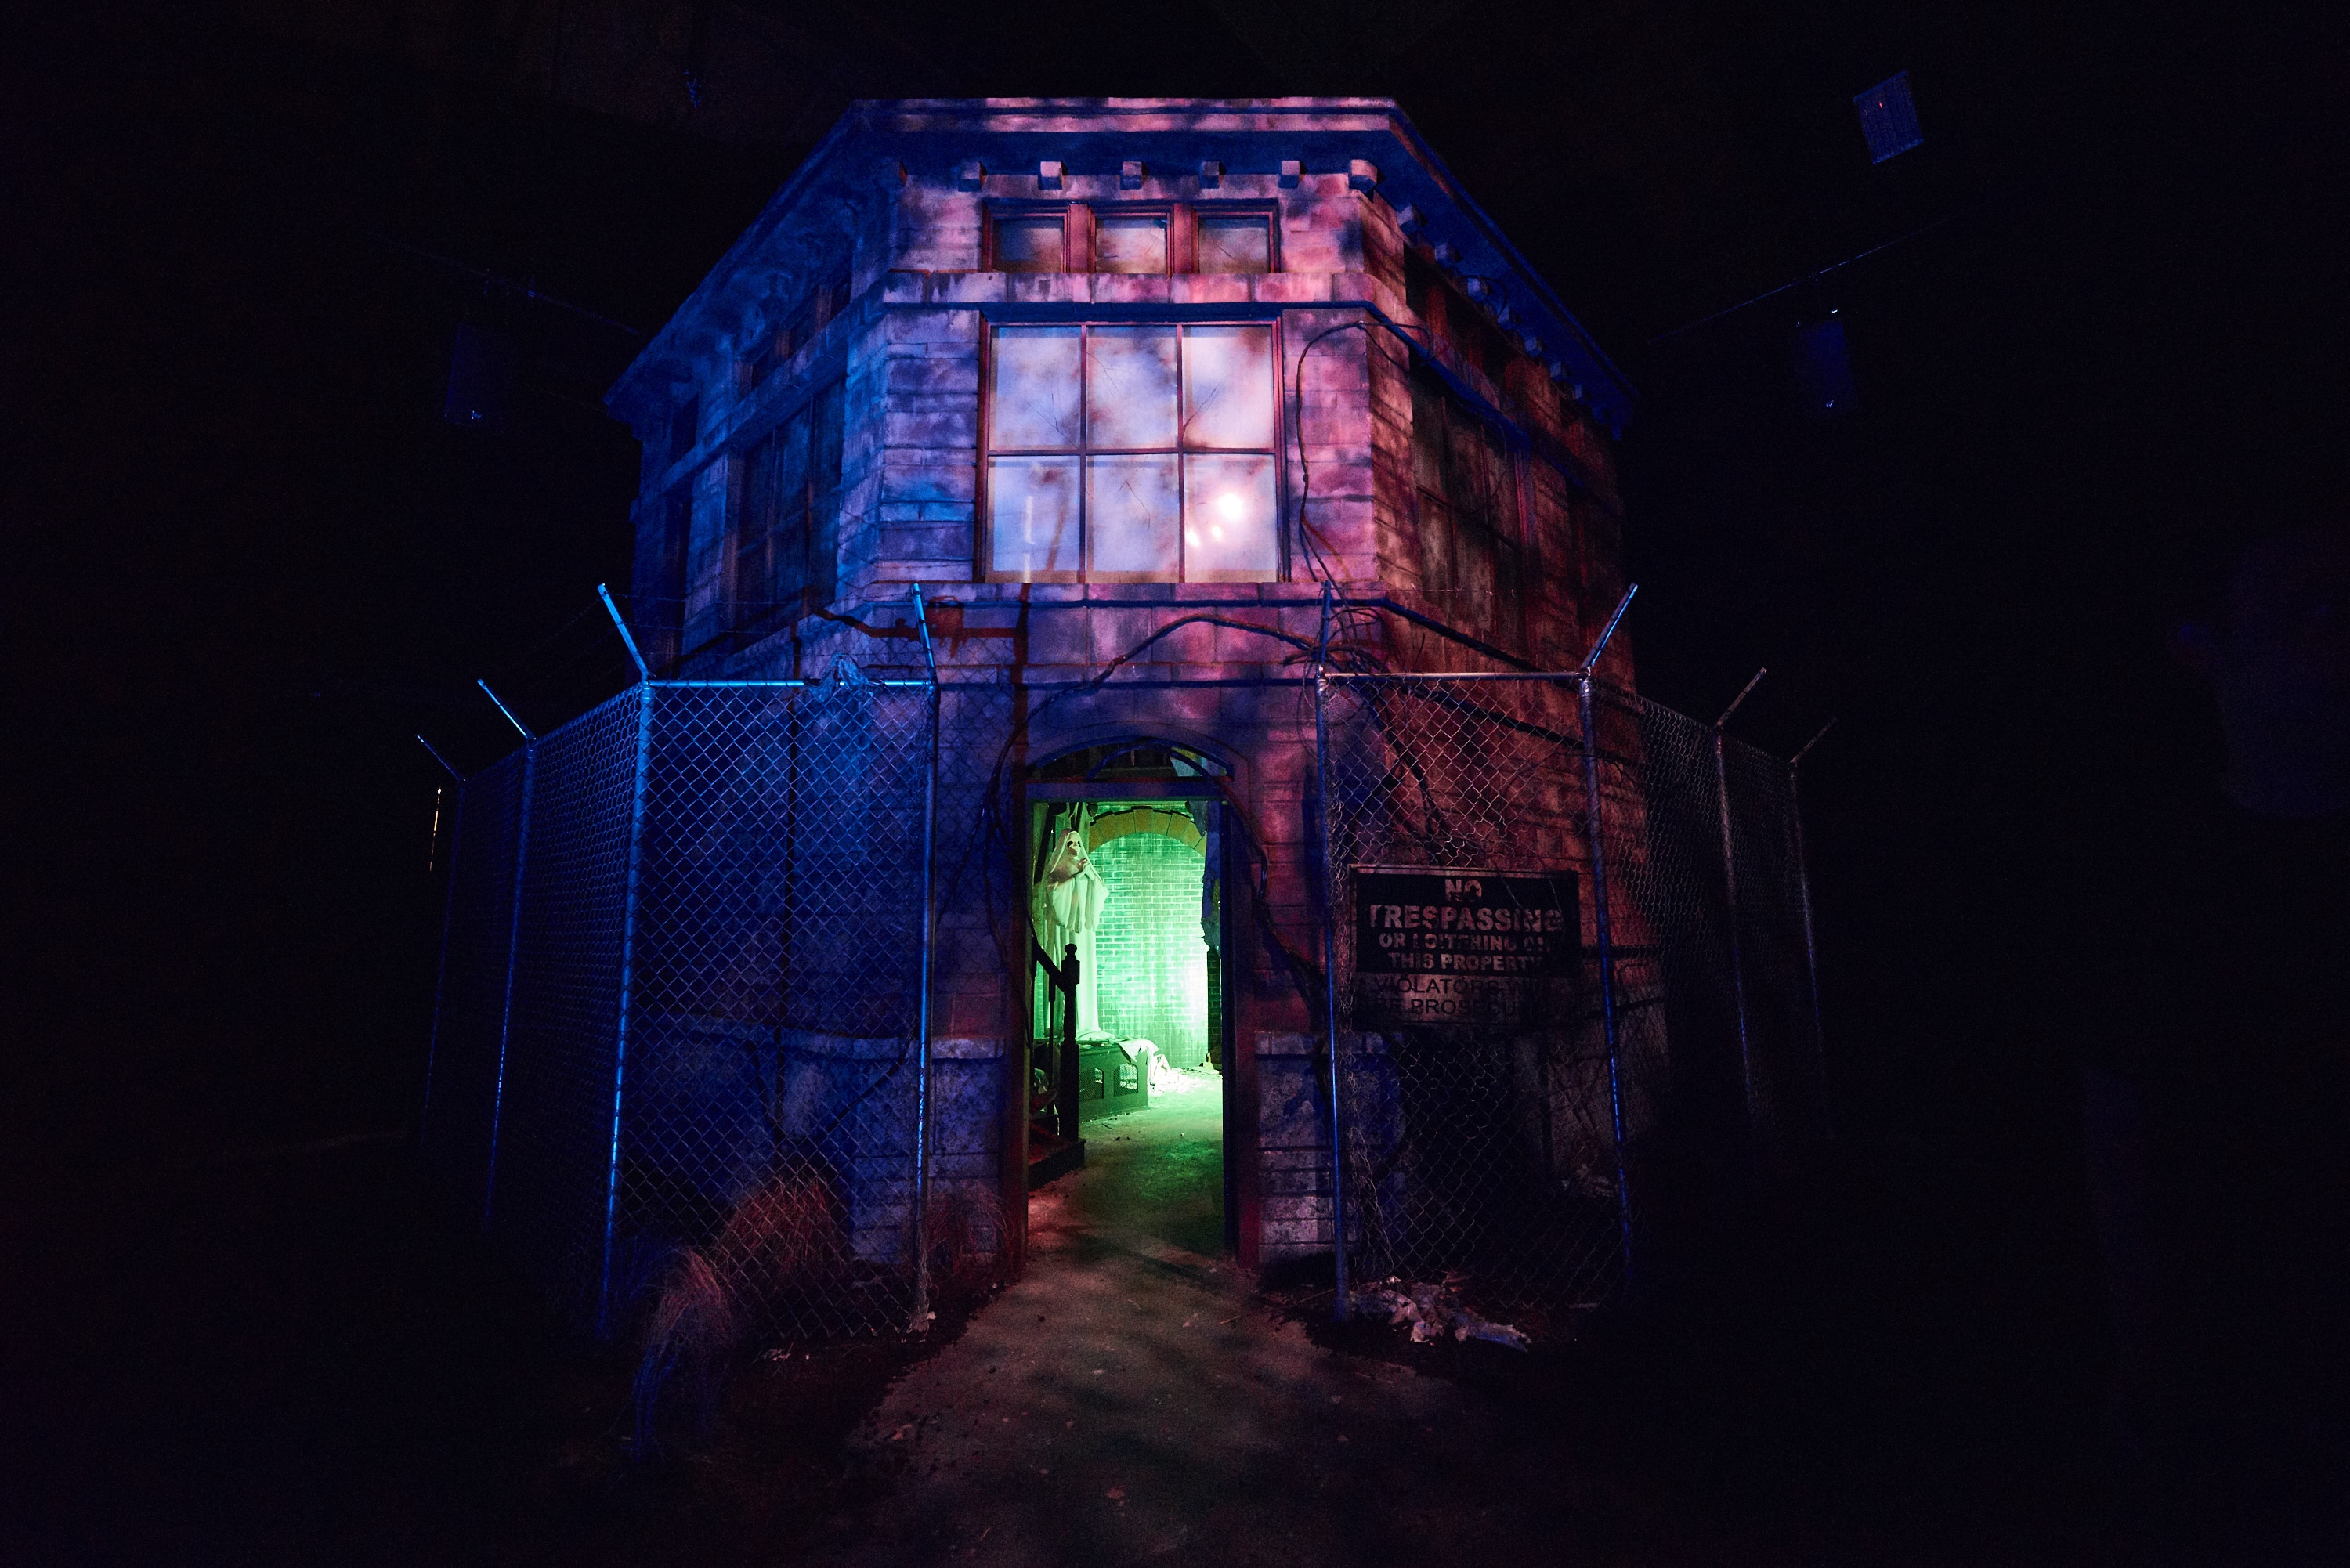 hhn01 American Horror Story - Universal Orlando Thrills and Terrifies With Halloween Horror Nights 27